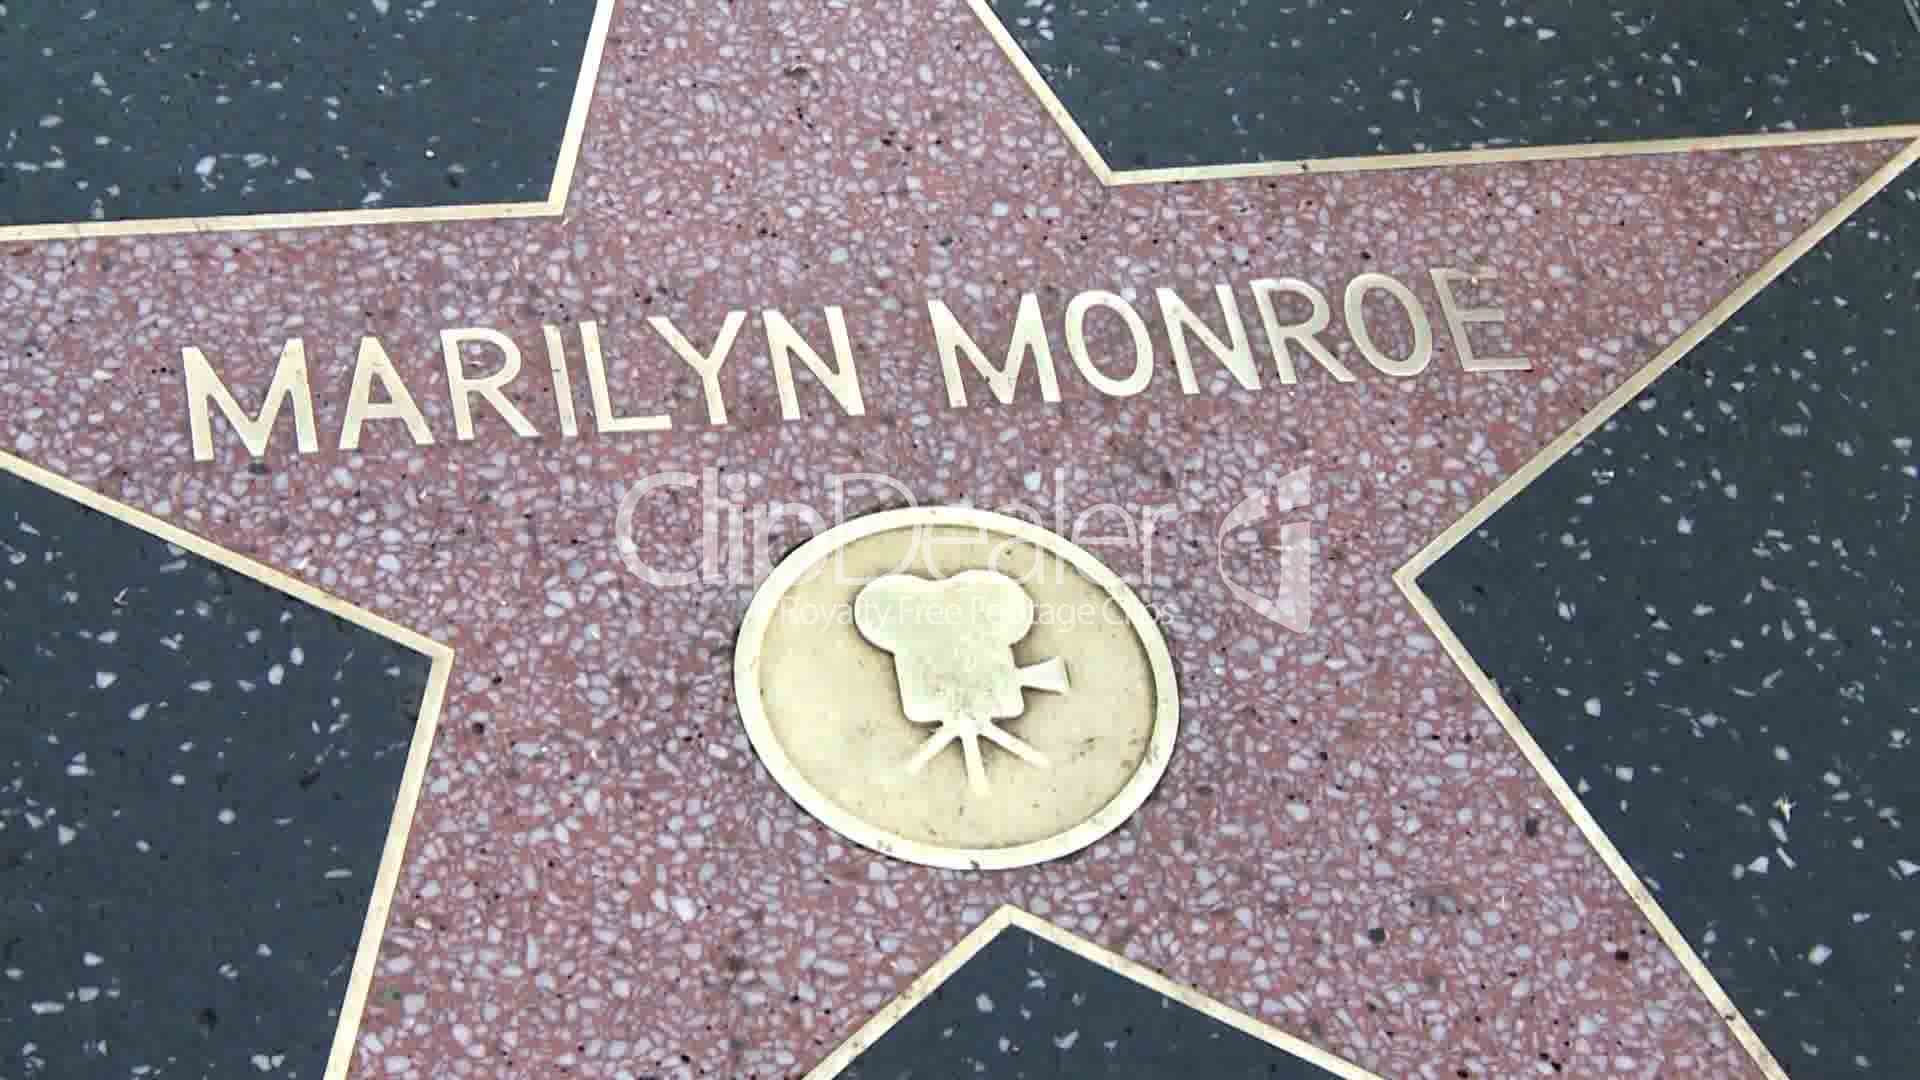 life of fame marilyn monroe The glamorously sordid life story of marilyn monroe has proven irresistible to hollywood filmmakers for years the combination of monroe's blinding external glamour and internal fragility is.